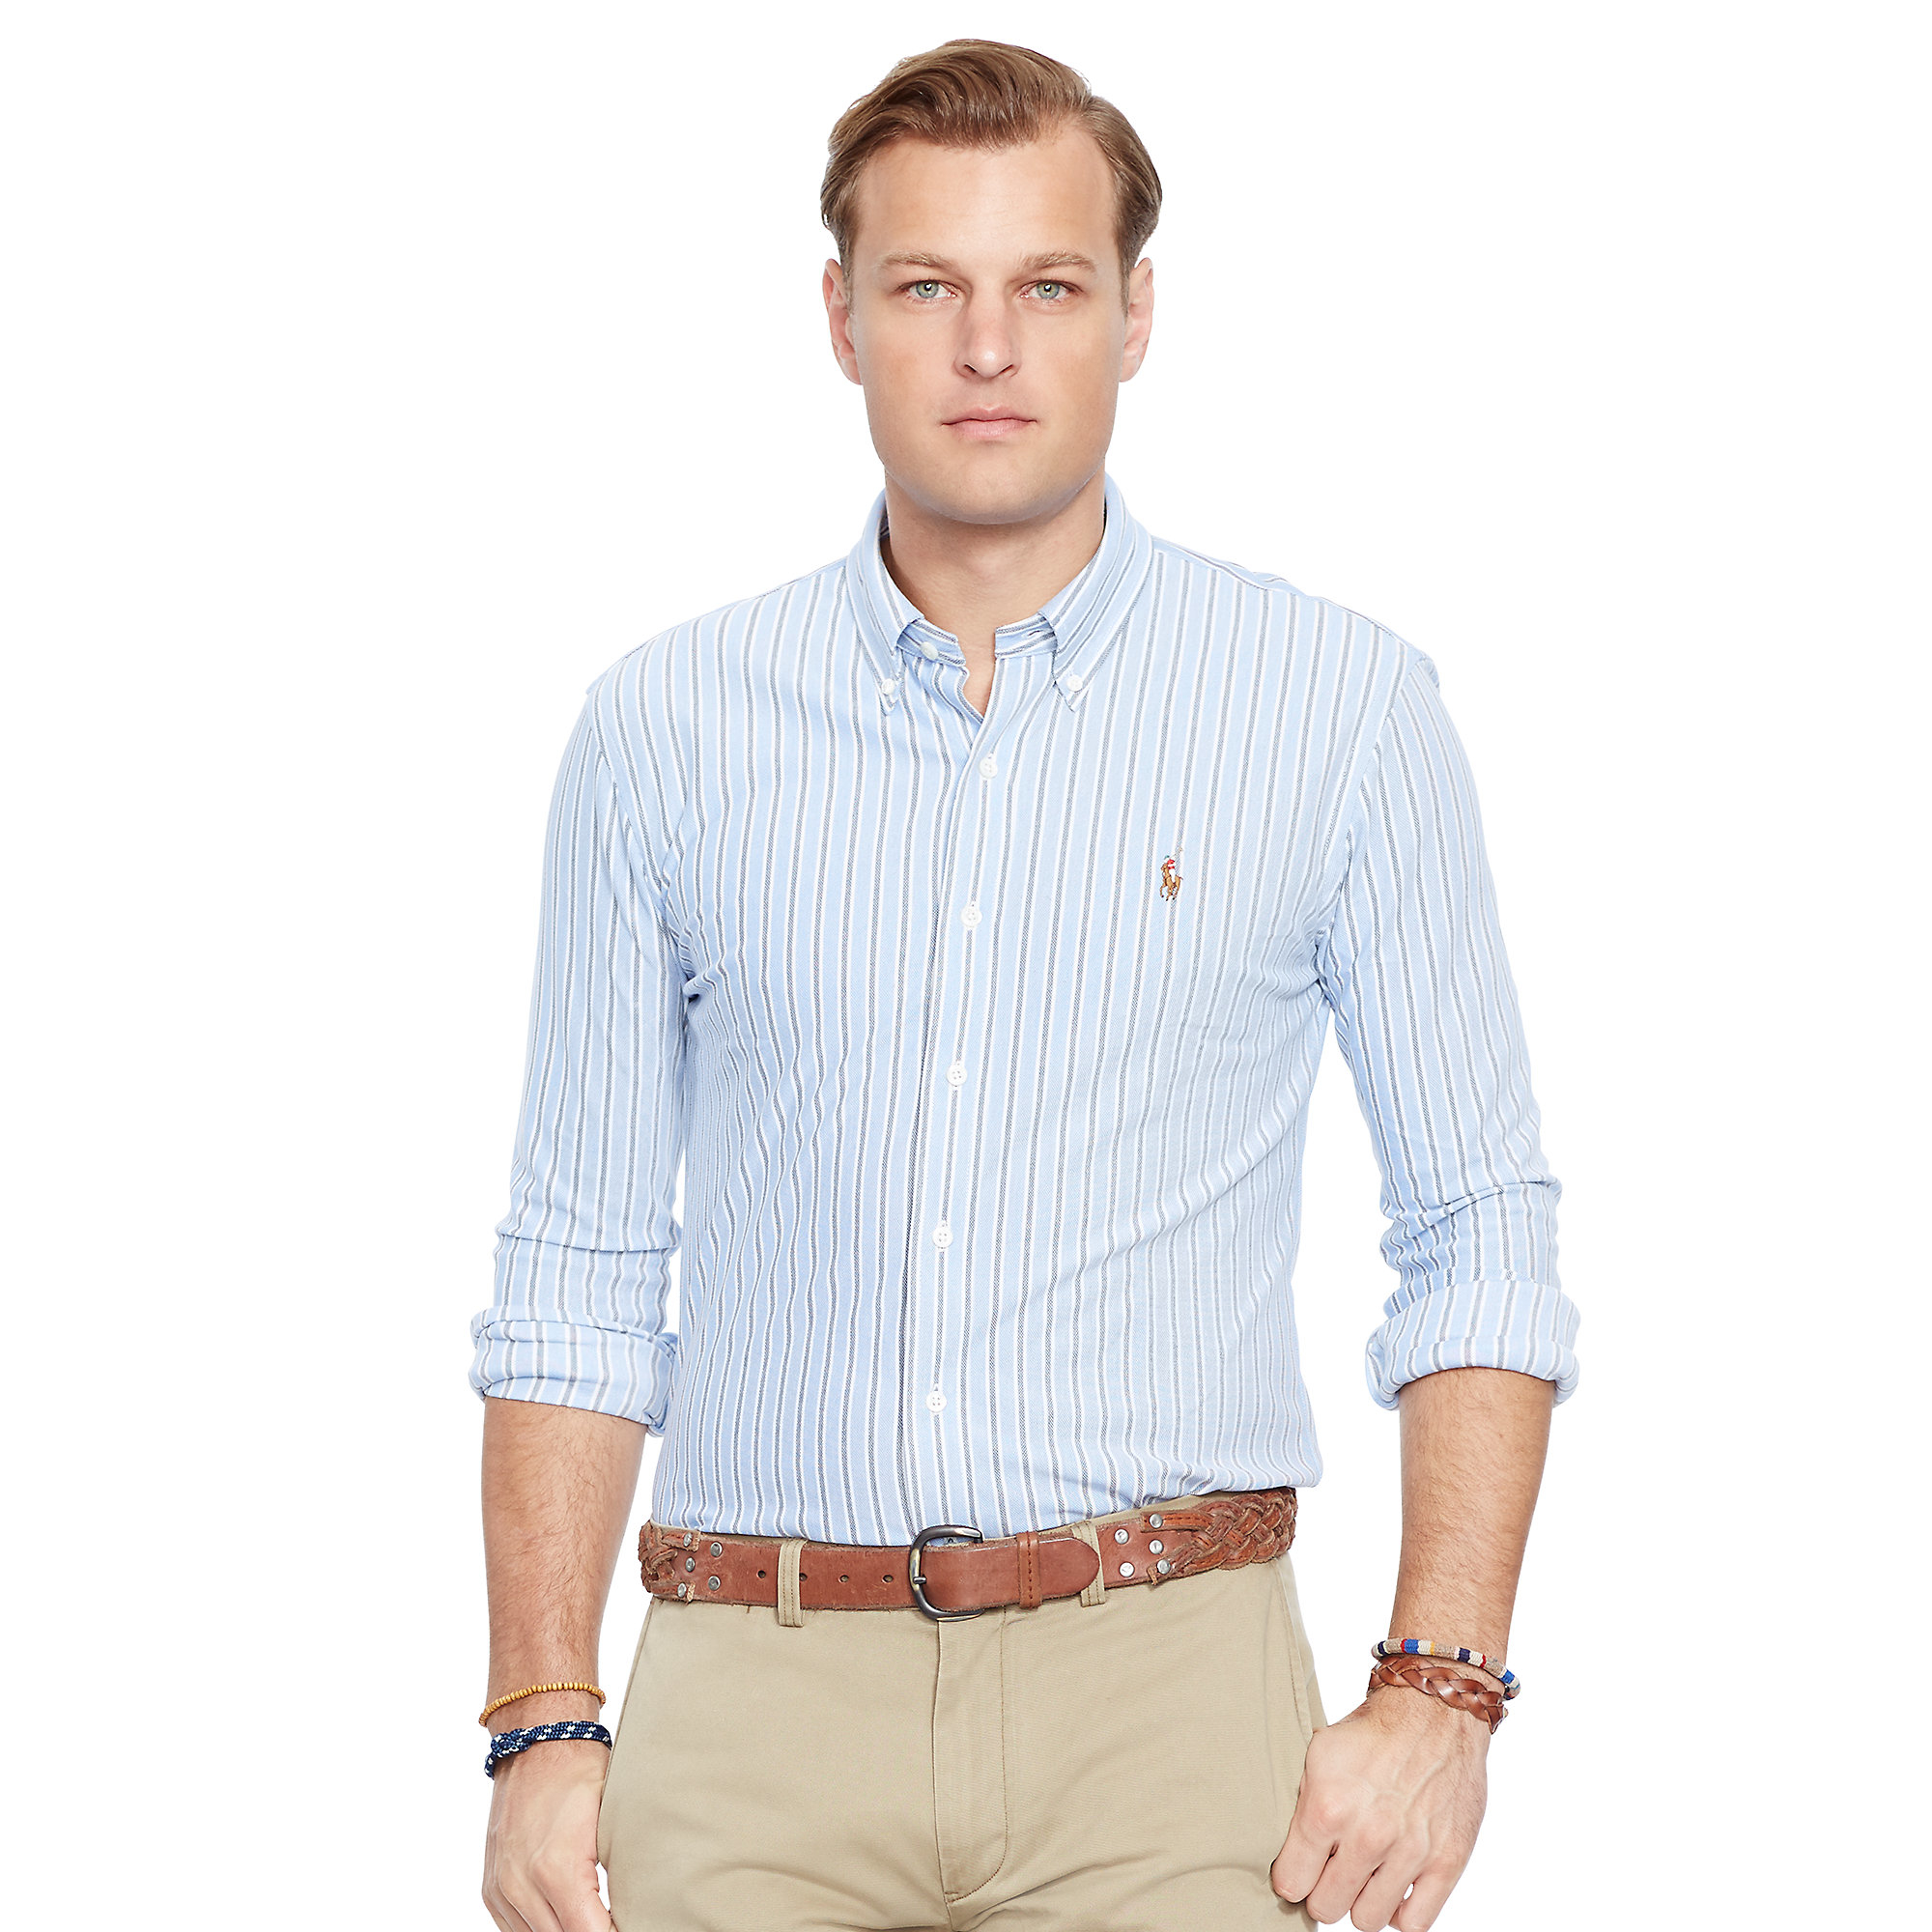 Lyst - Pink Pony Striped Knit Oxford Shirt in Blue for Men 0e22ec1a2